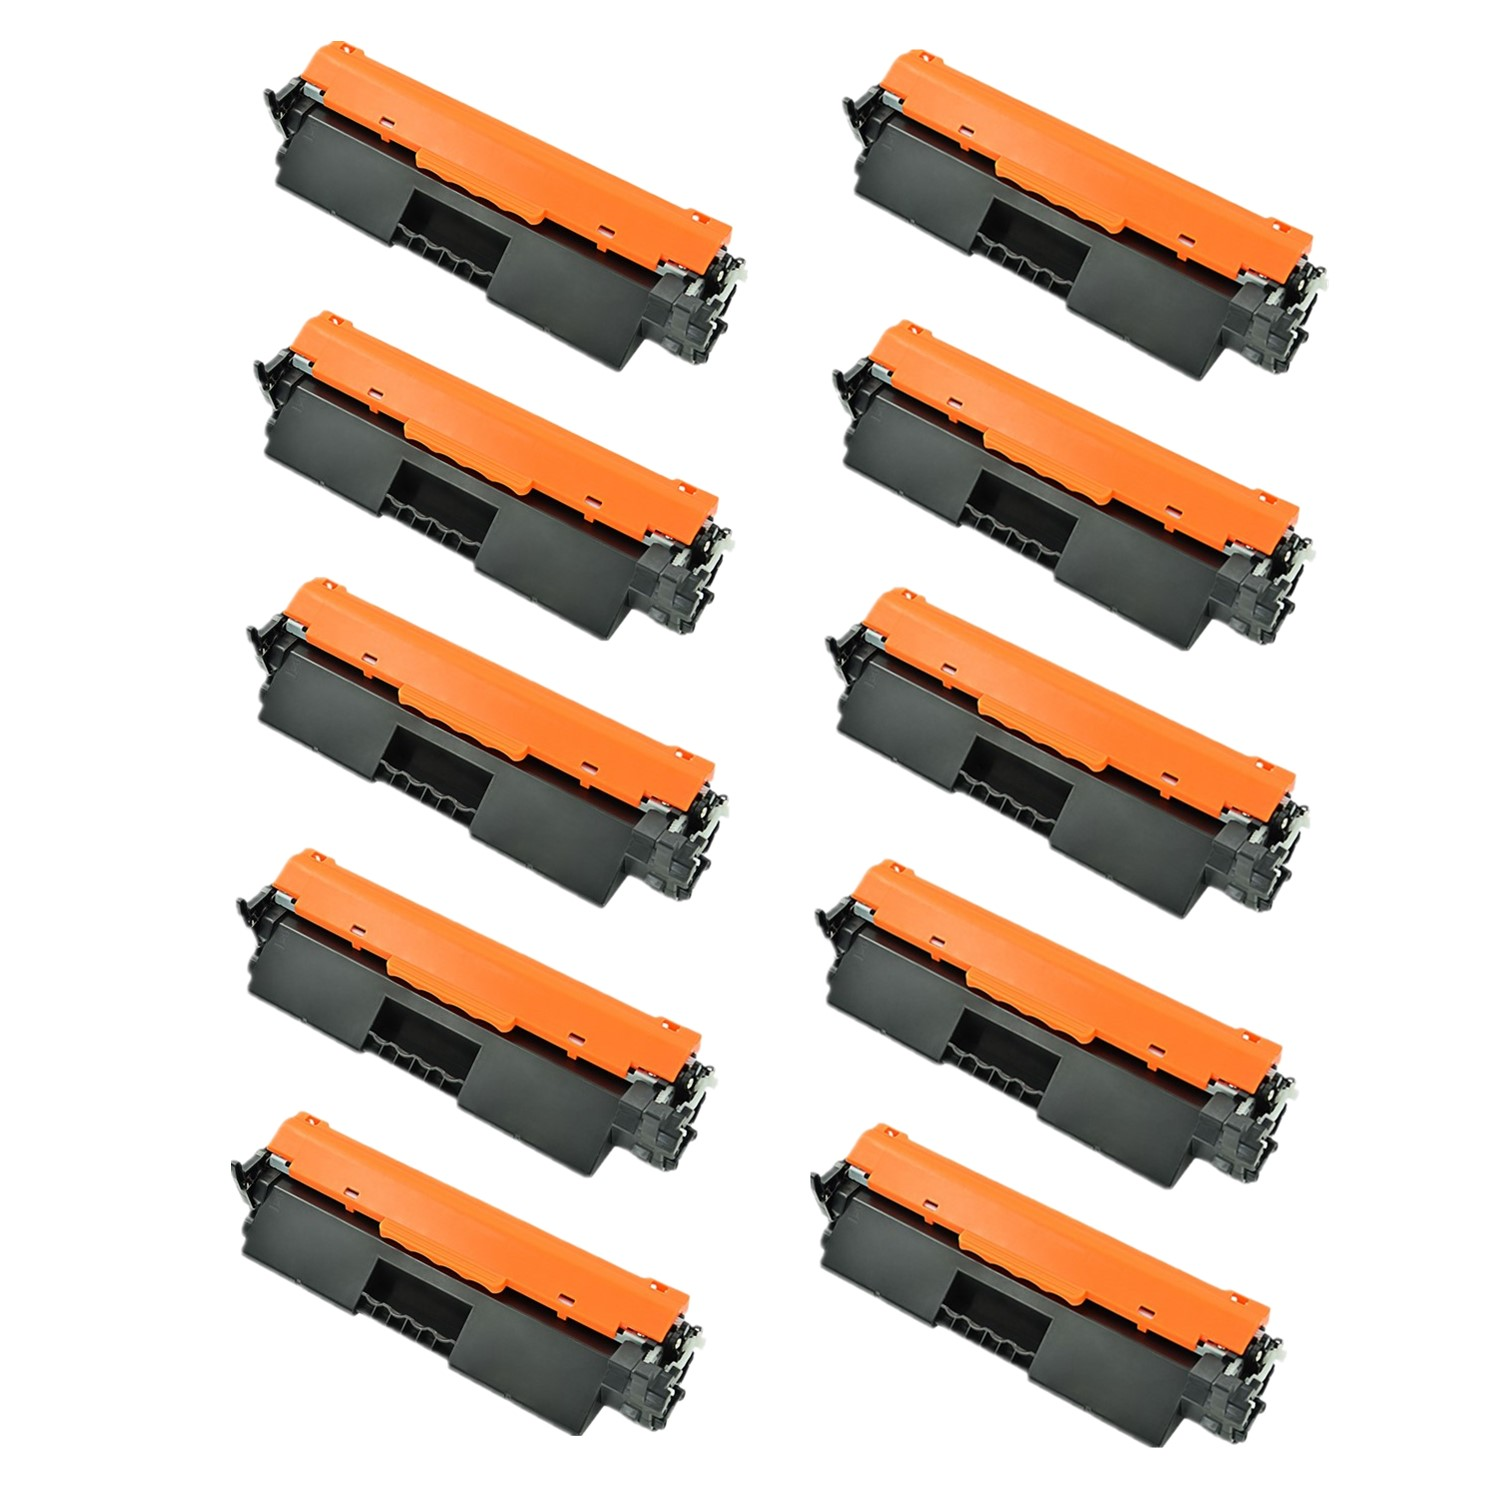 6PK CF230A 30A Toner Cartridge For HP LaserJet Pro M203 M203dn M227fdn M227fdw